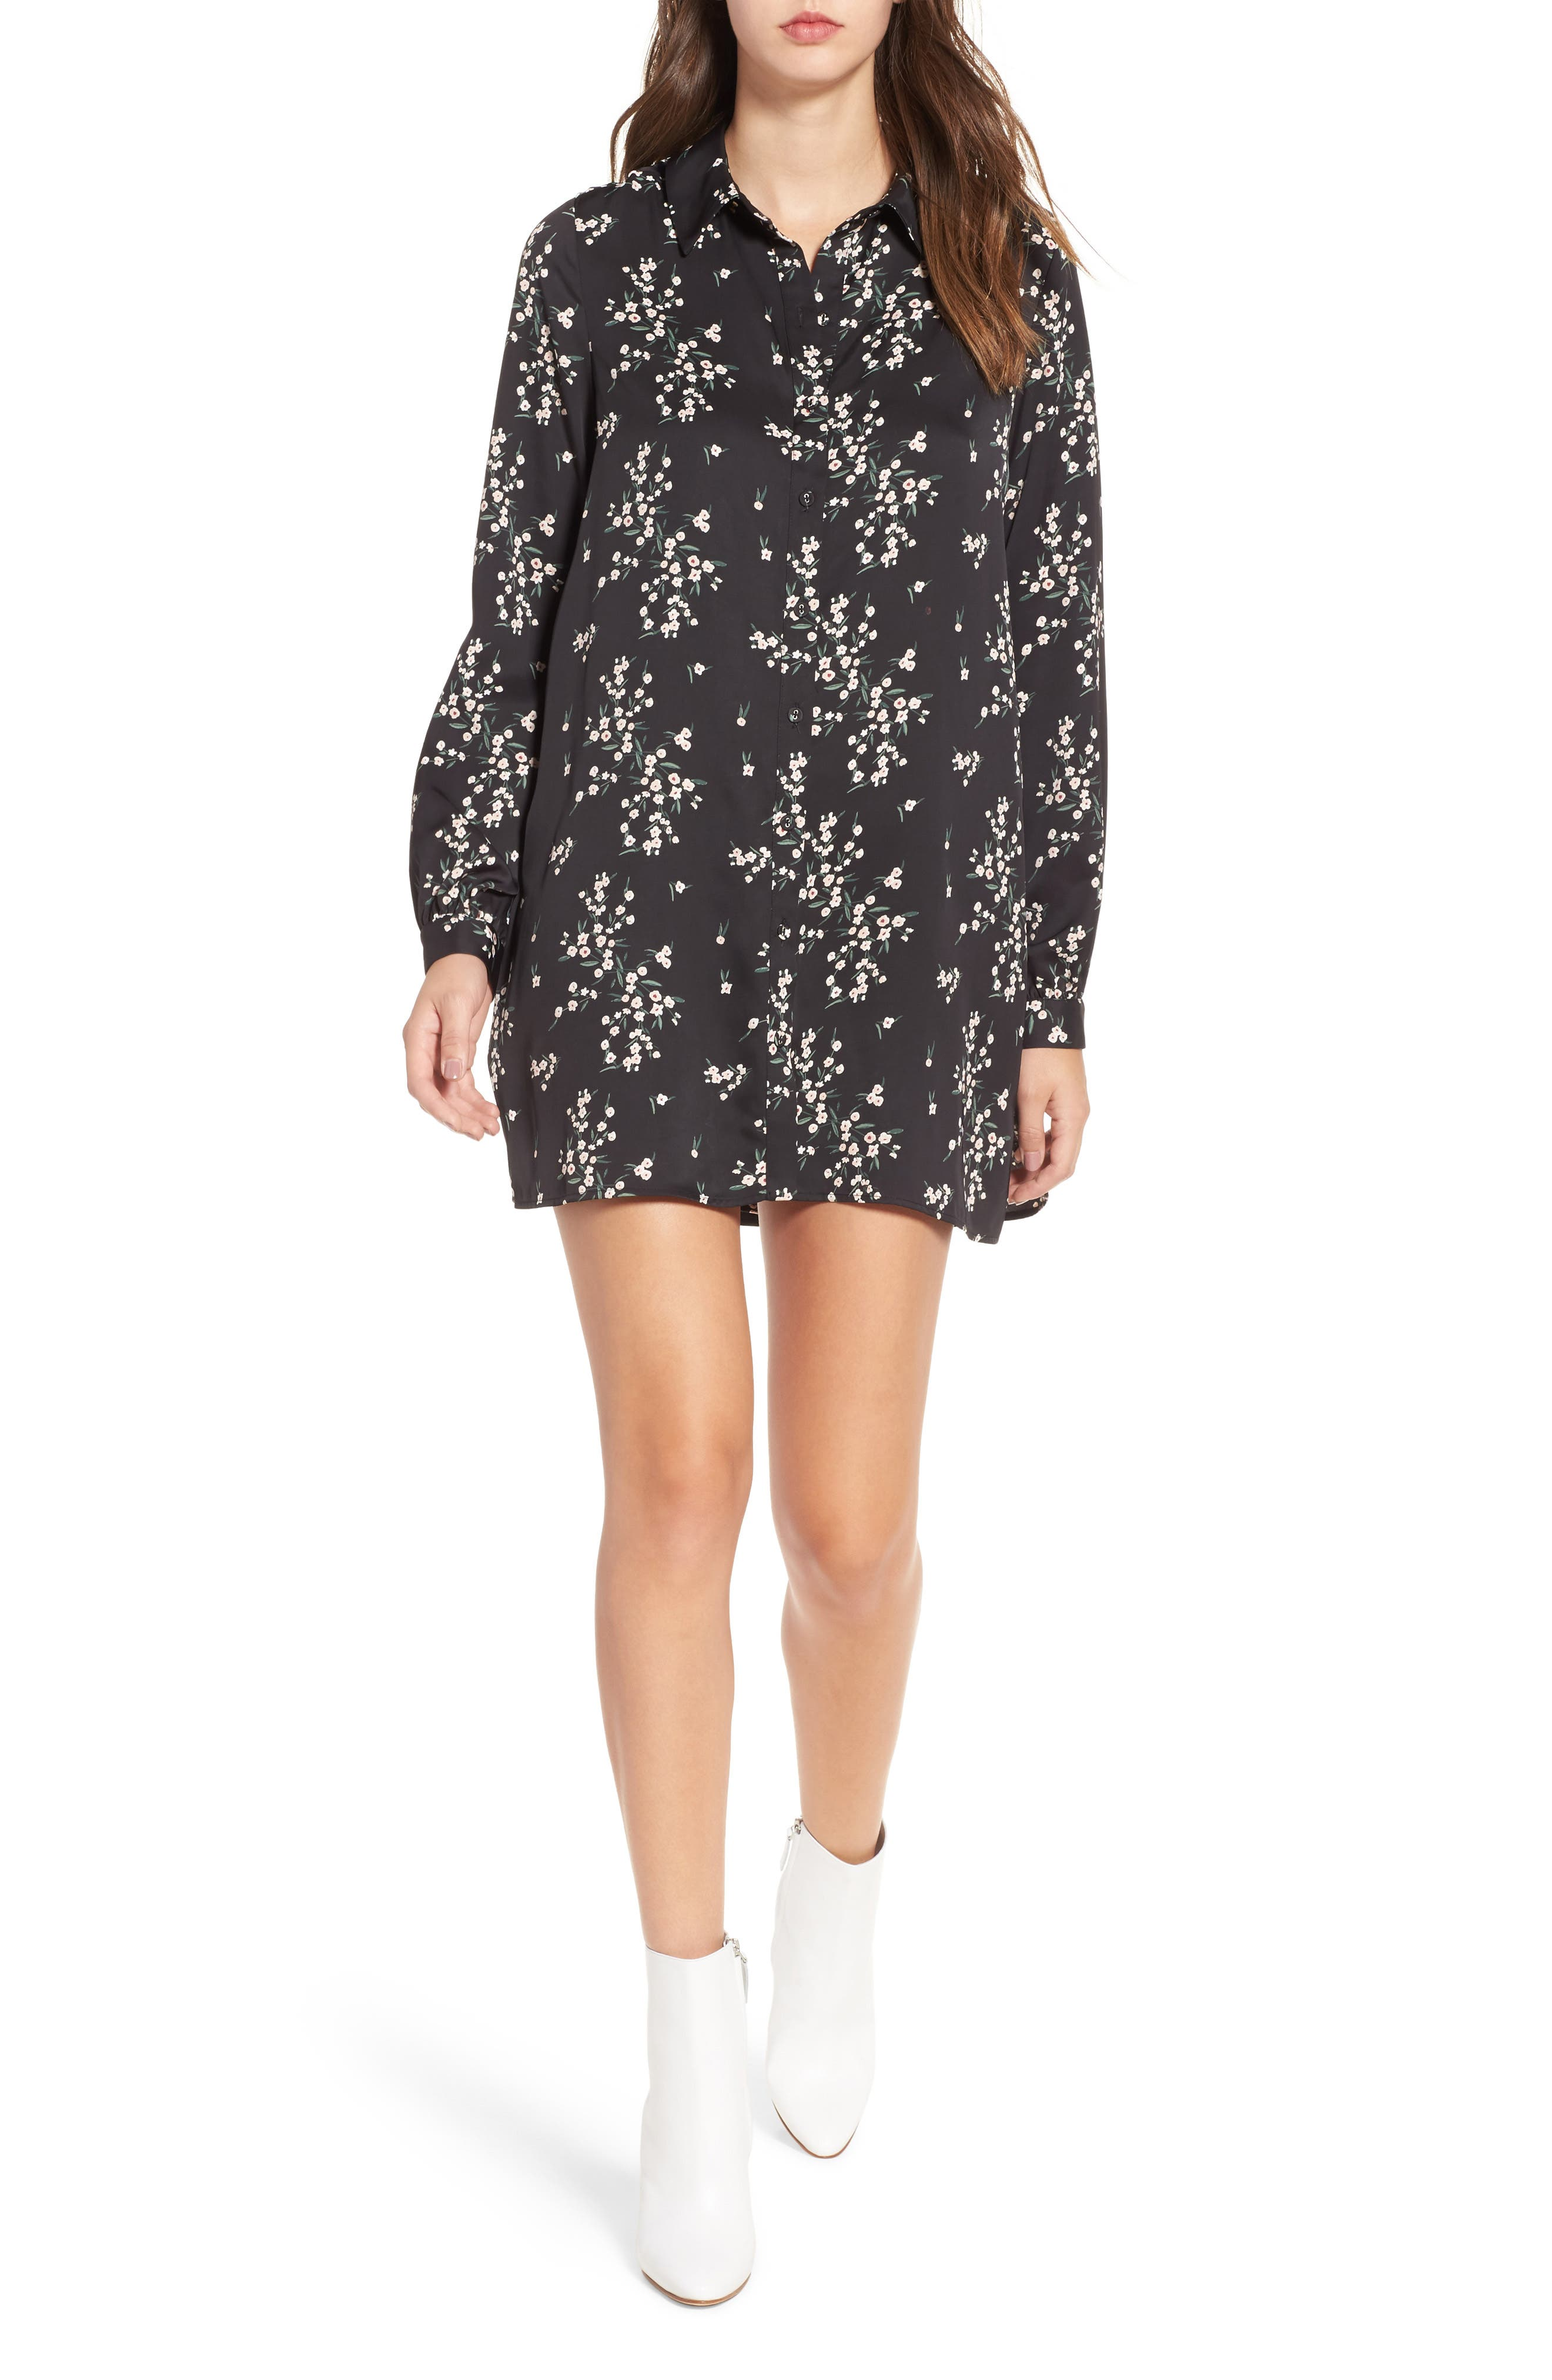 L'Academie The Swing Shirtdress,                         Main,                         color,